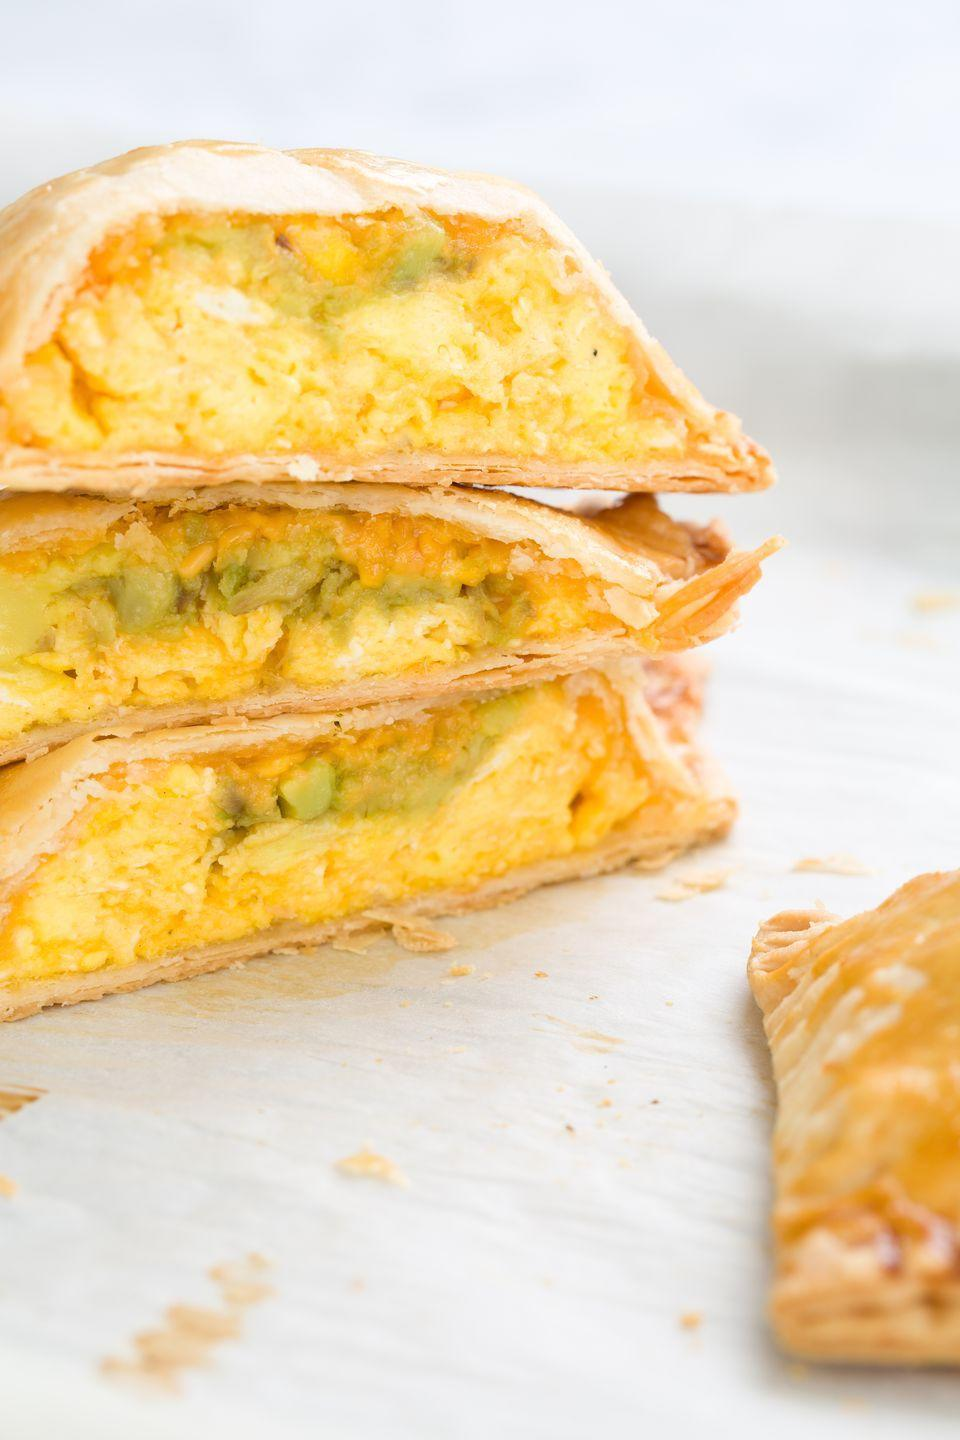 "<p>Stuffed with scrambled eggs, mashed avocado, and cheese, these are better than anything you'll find in the freezer aisle, and perfect for eating in bed.</p><p>Get the recipe from <a href=""https://www.delish.com/cooking/recipe-ideas/recipes/a44098/egg-avocado-and-cheddar-homemade-hot-pockets-recipe/"" rel=""nofollow noopener"" target=""_blank"" data-ylk=""slk:Delish"" class=""link rapid-noclick-resp"">Delish</a>.</p>"